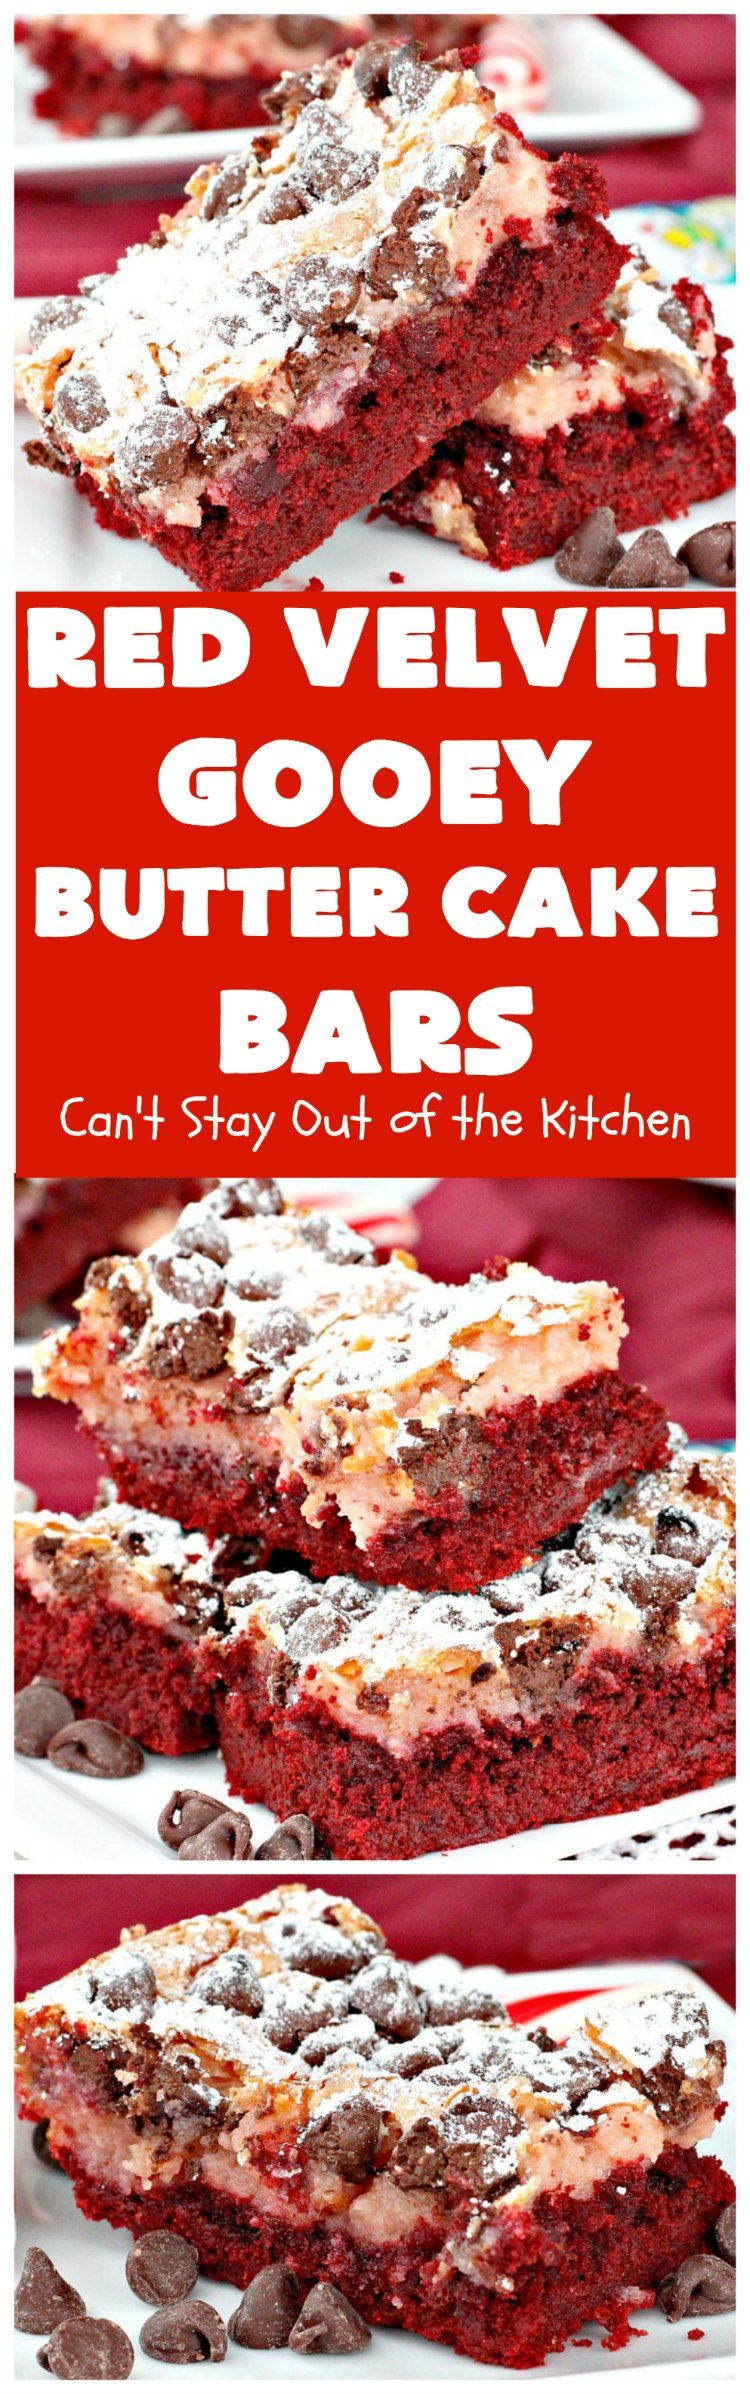 Red Velvet Gooey Butter Cake Bars #redvelvetcheesecake